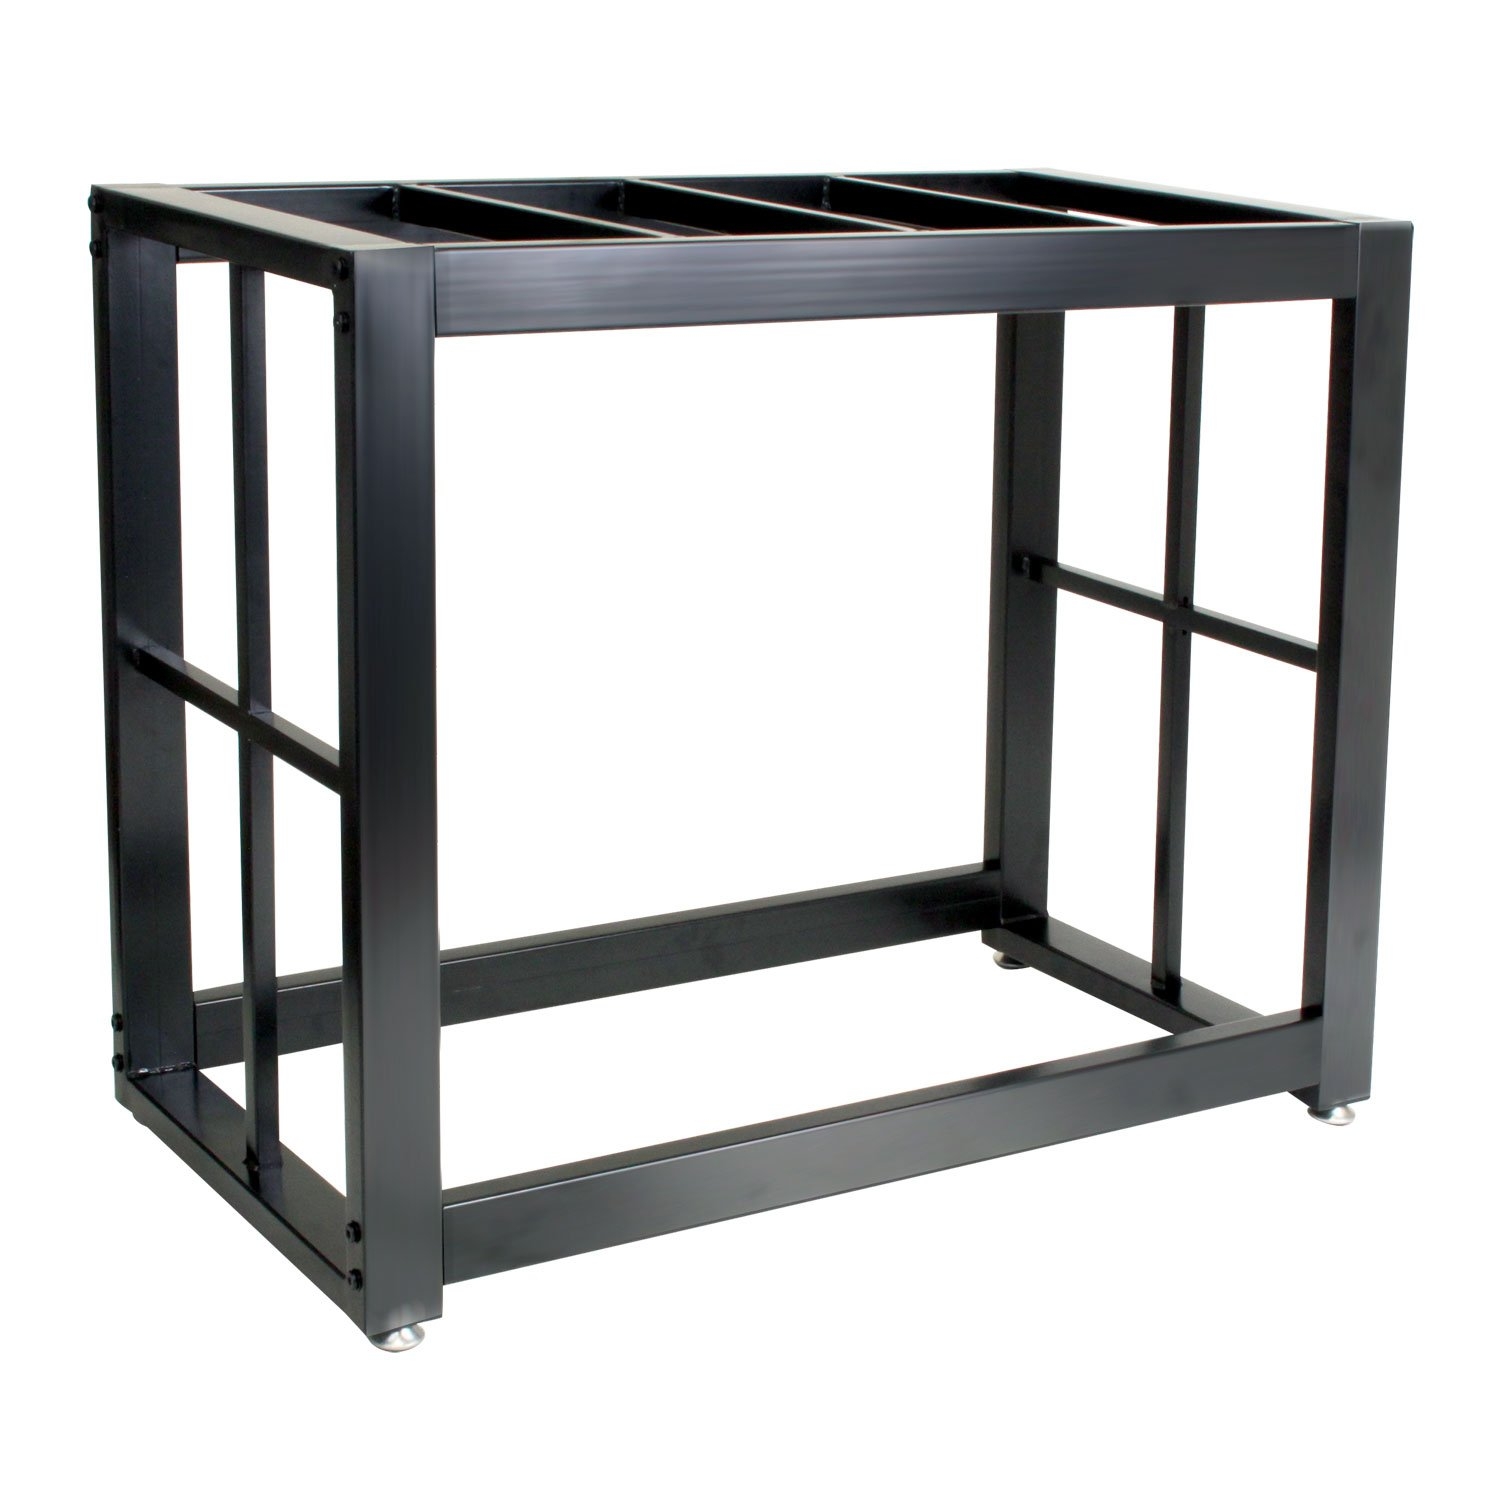 Petco brooklyn 40 gallon metal tank stand 36 5 l x 18 5 for Stand modulaire aluminium